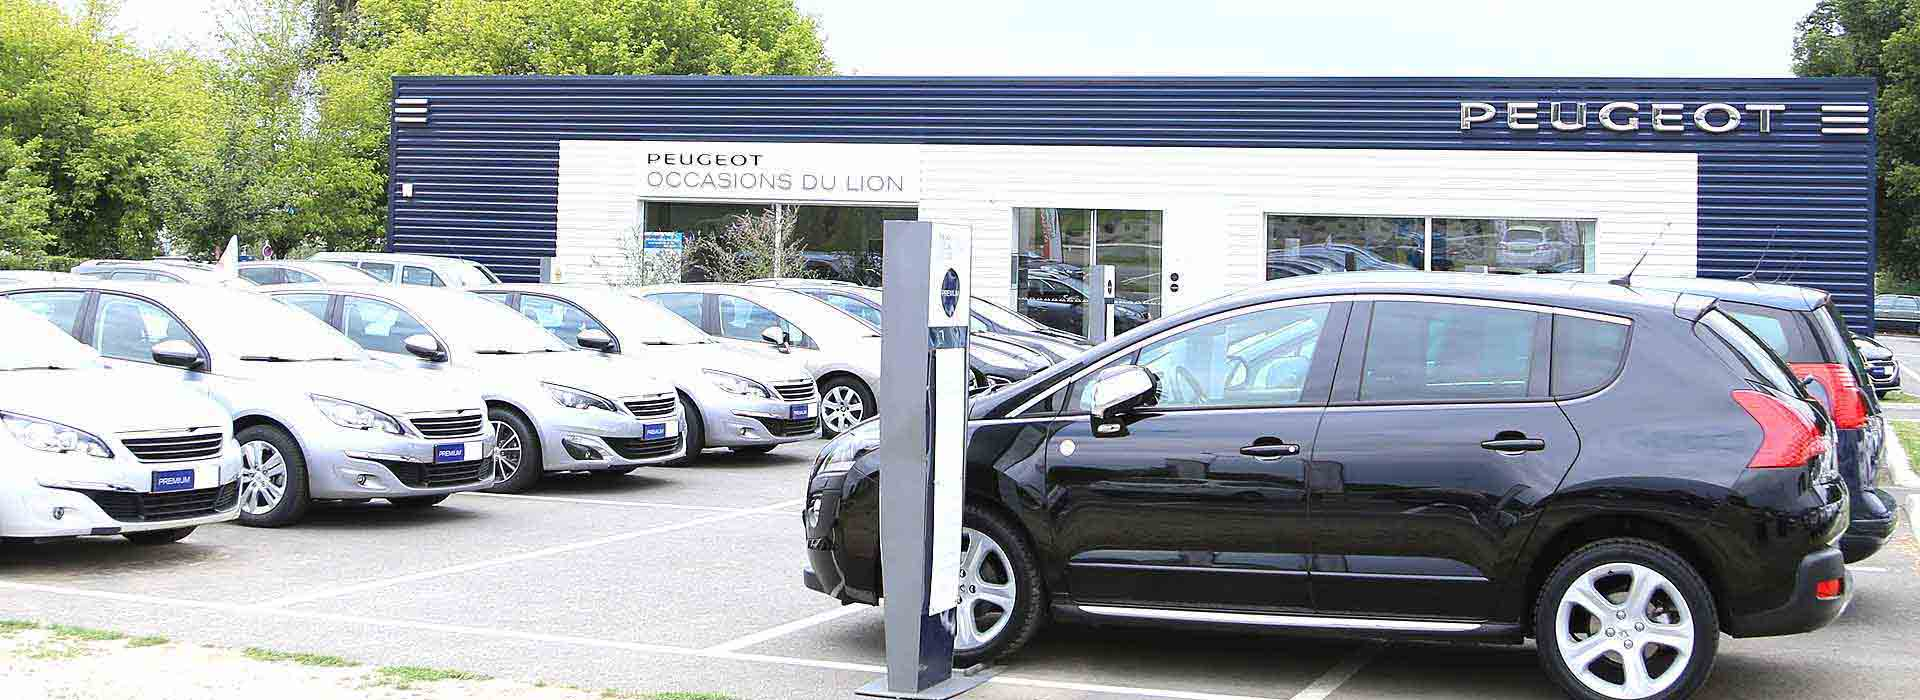 Peugeot tours concessionnaire garage indre et loire 37 for Garage audi chambray les tours